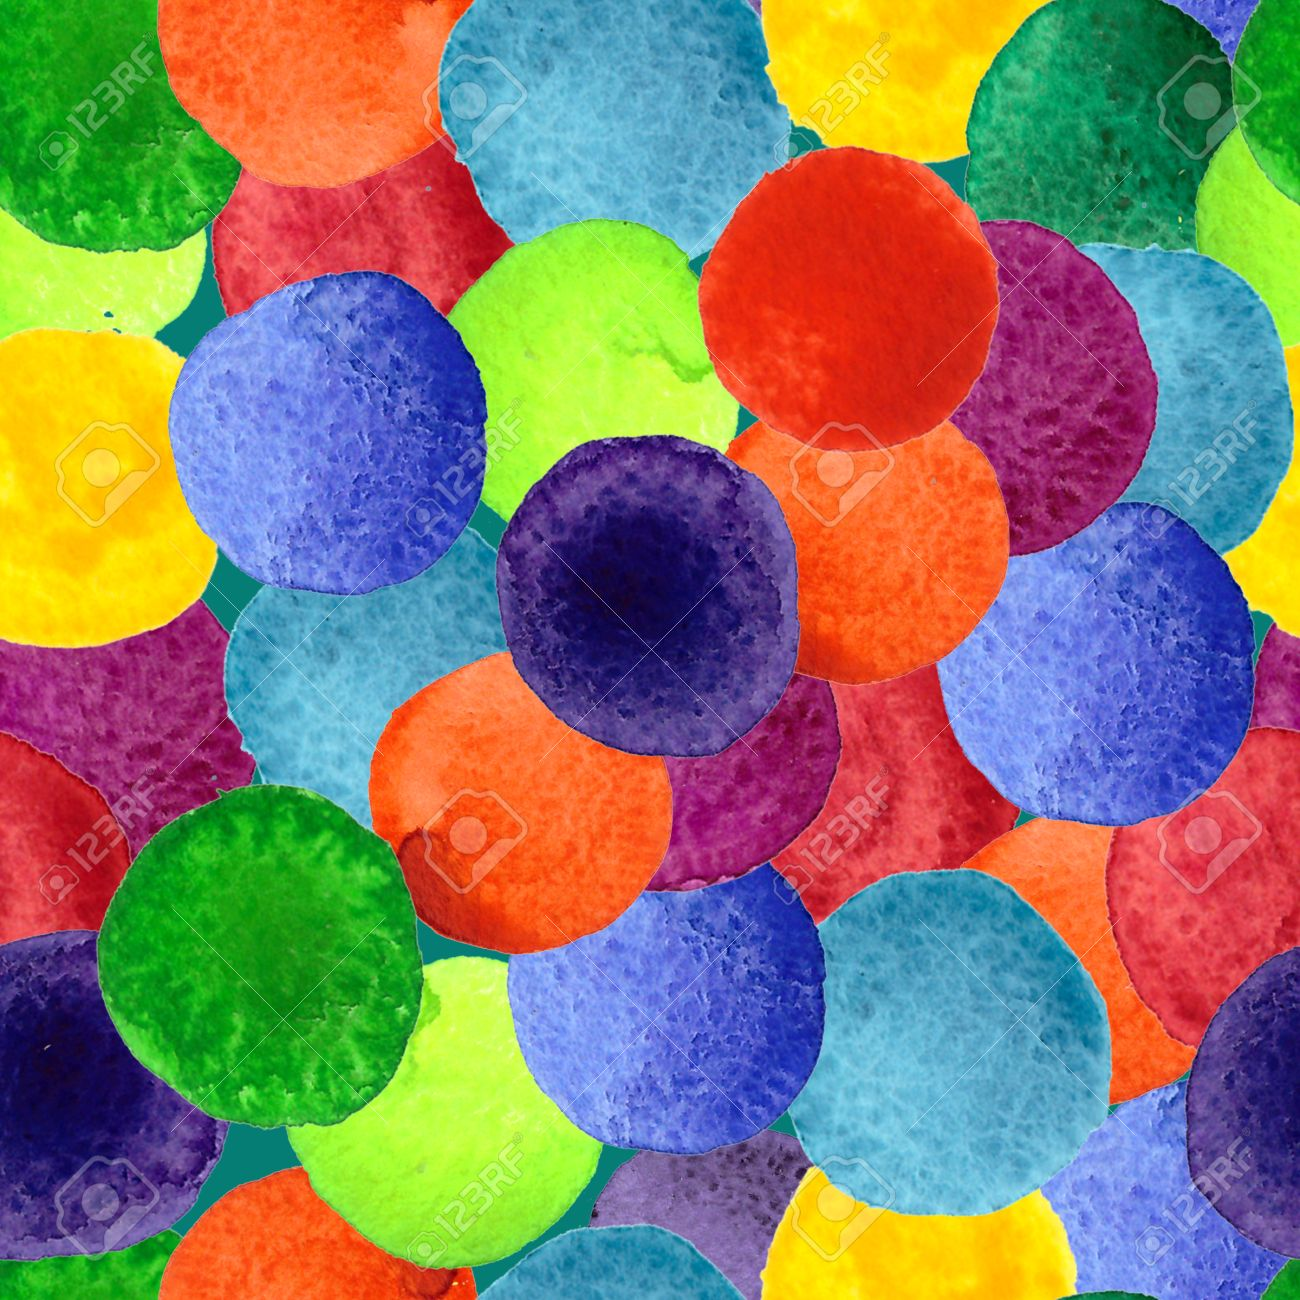 Handmade Watercolor Texture Colorful Paint Drops Color Wheel